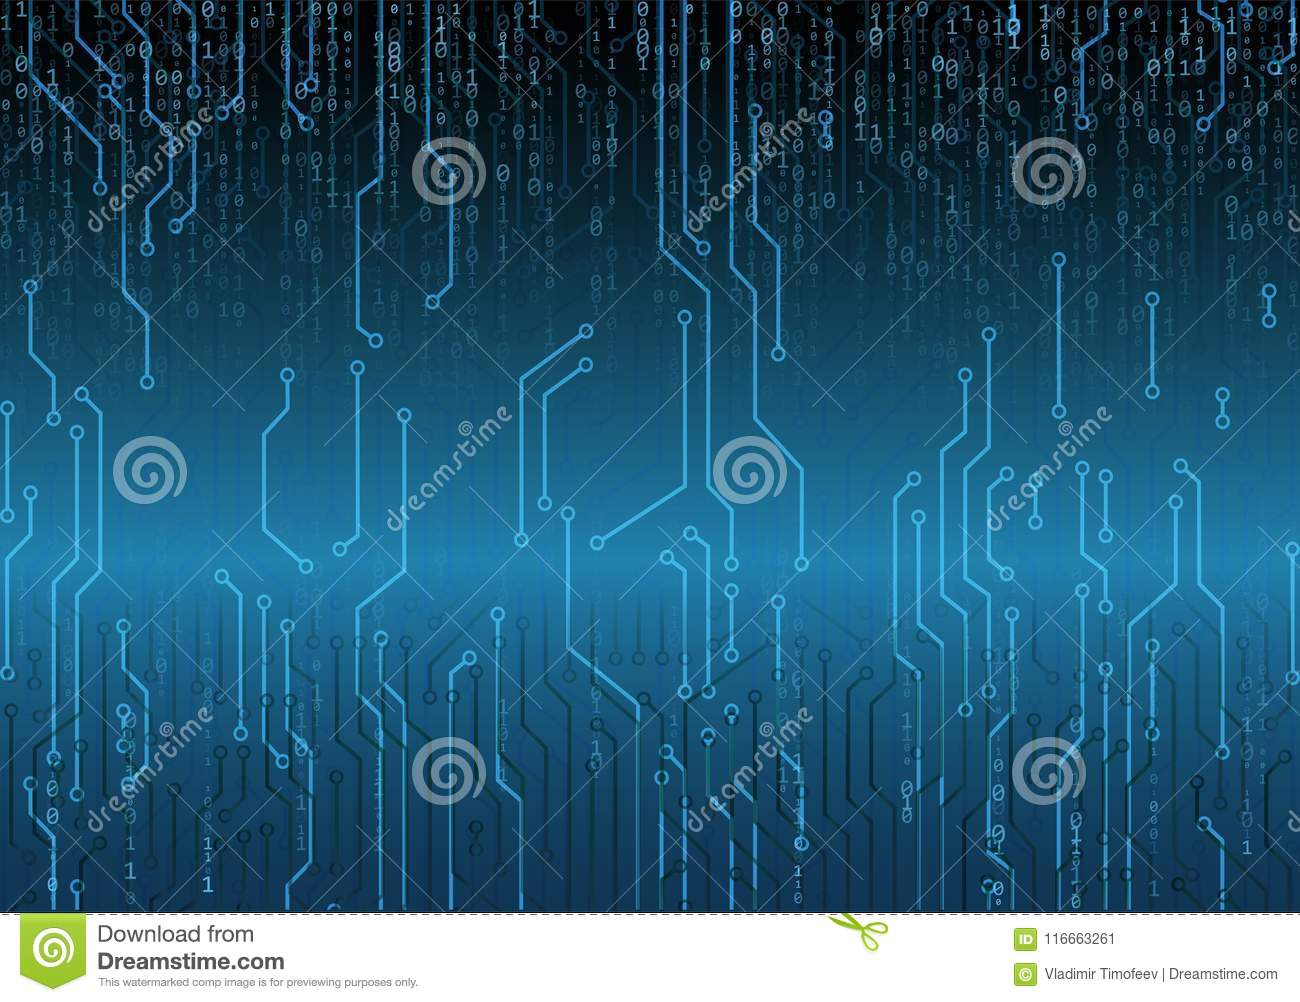 Binary Circuit Board Future Technology Blue Cyber Security Concept Abstact Background With And Code Stock Images Computer Royalty Free Vector Web Developer